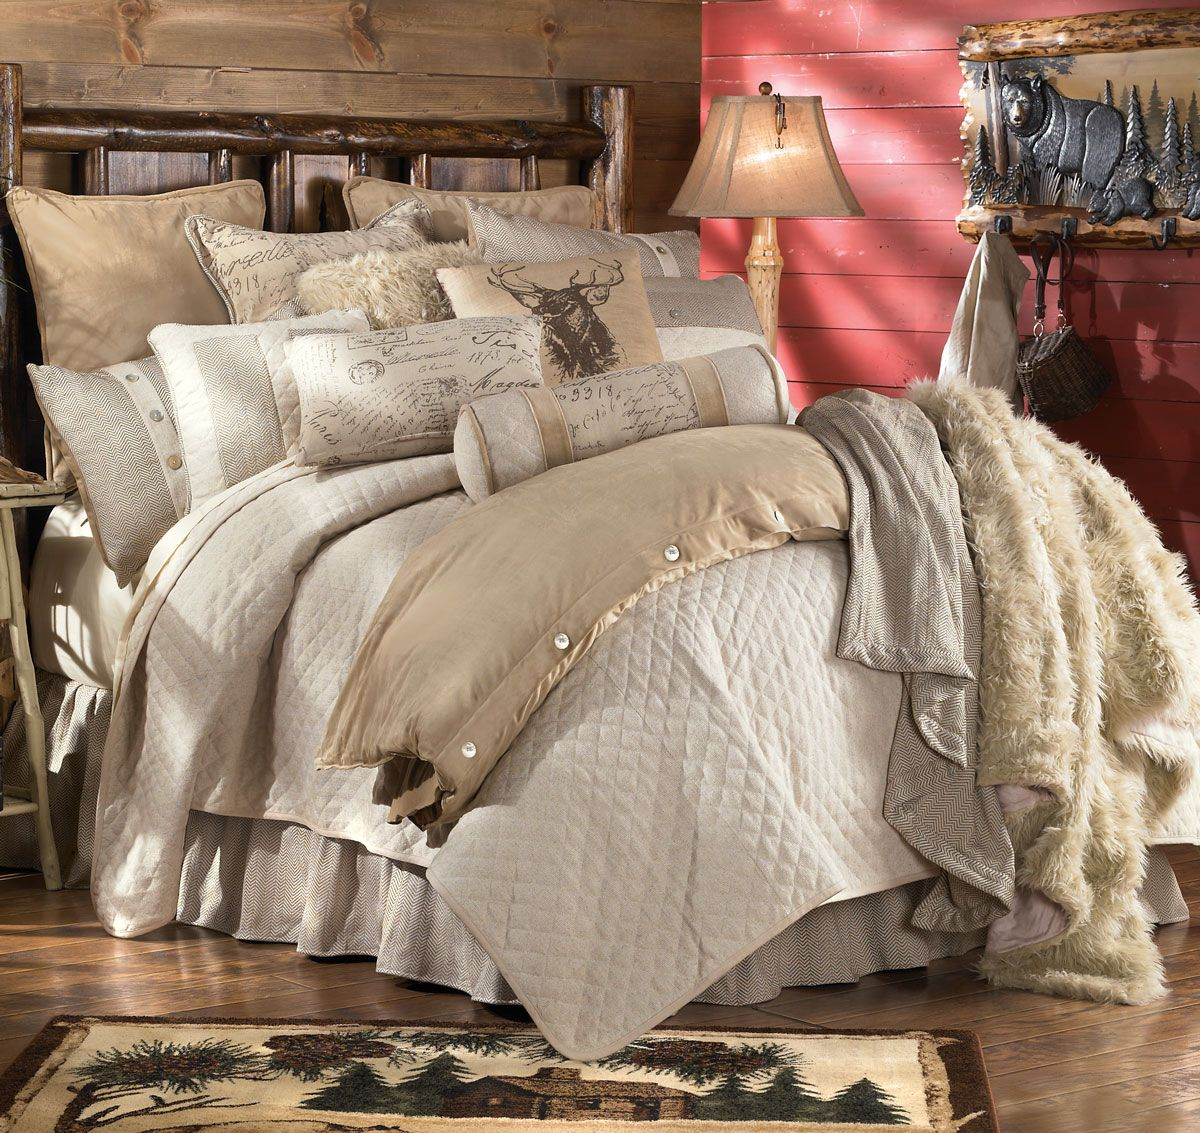 Fairfield Bed Set King Farmhouse Bedding Sets Rustic Bedding